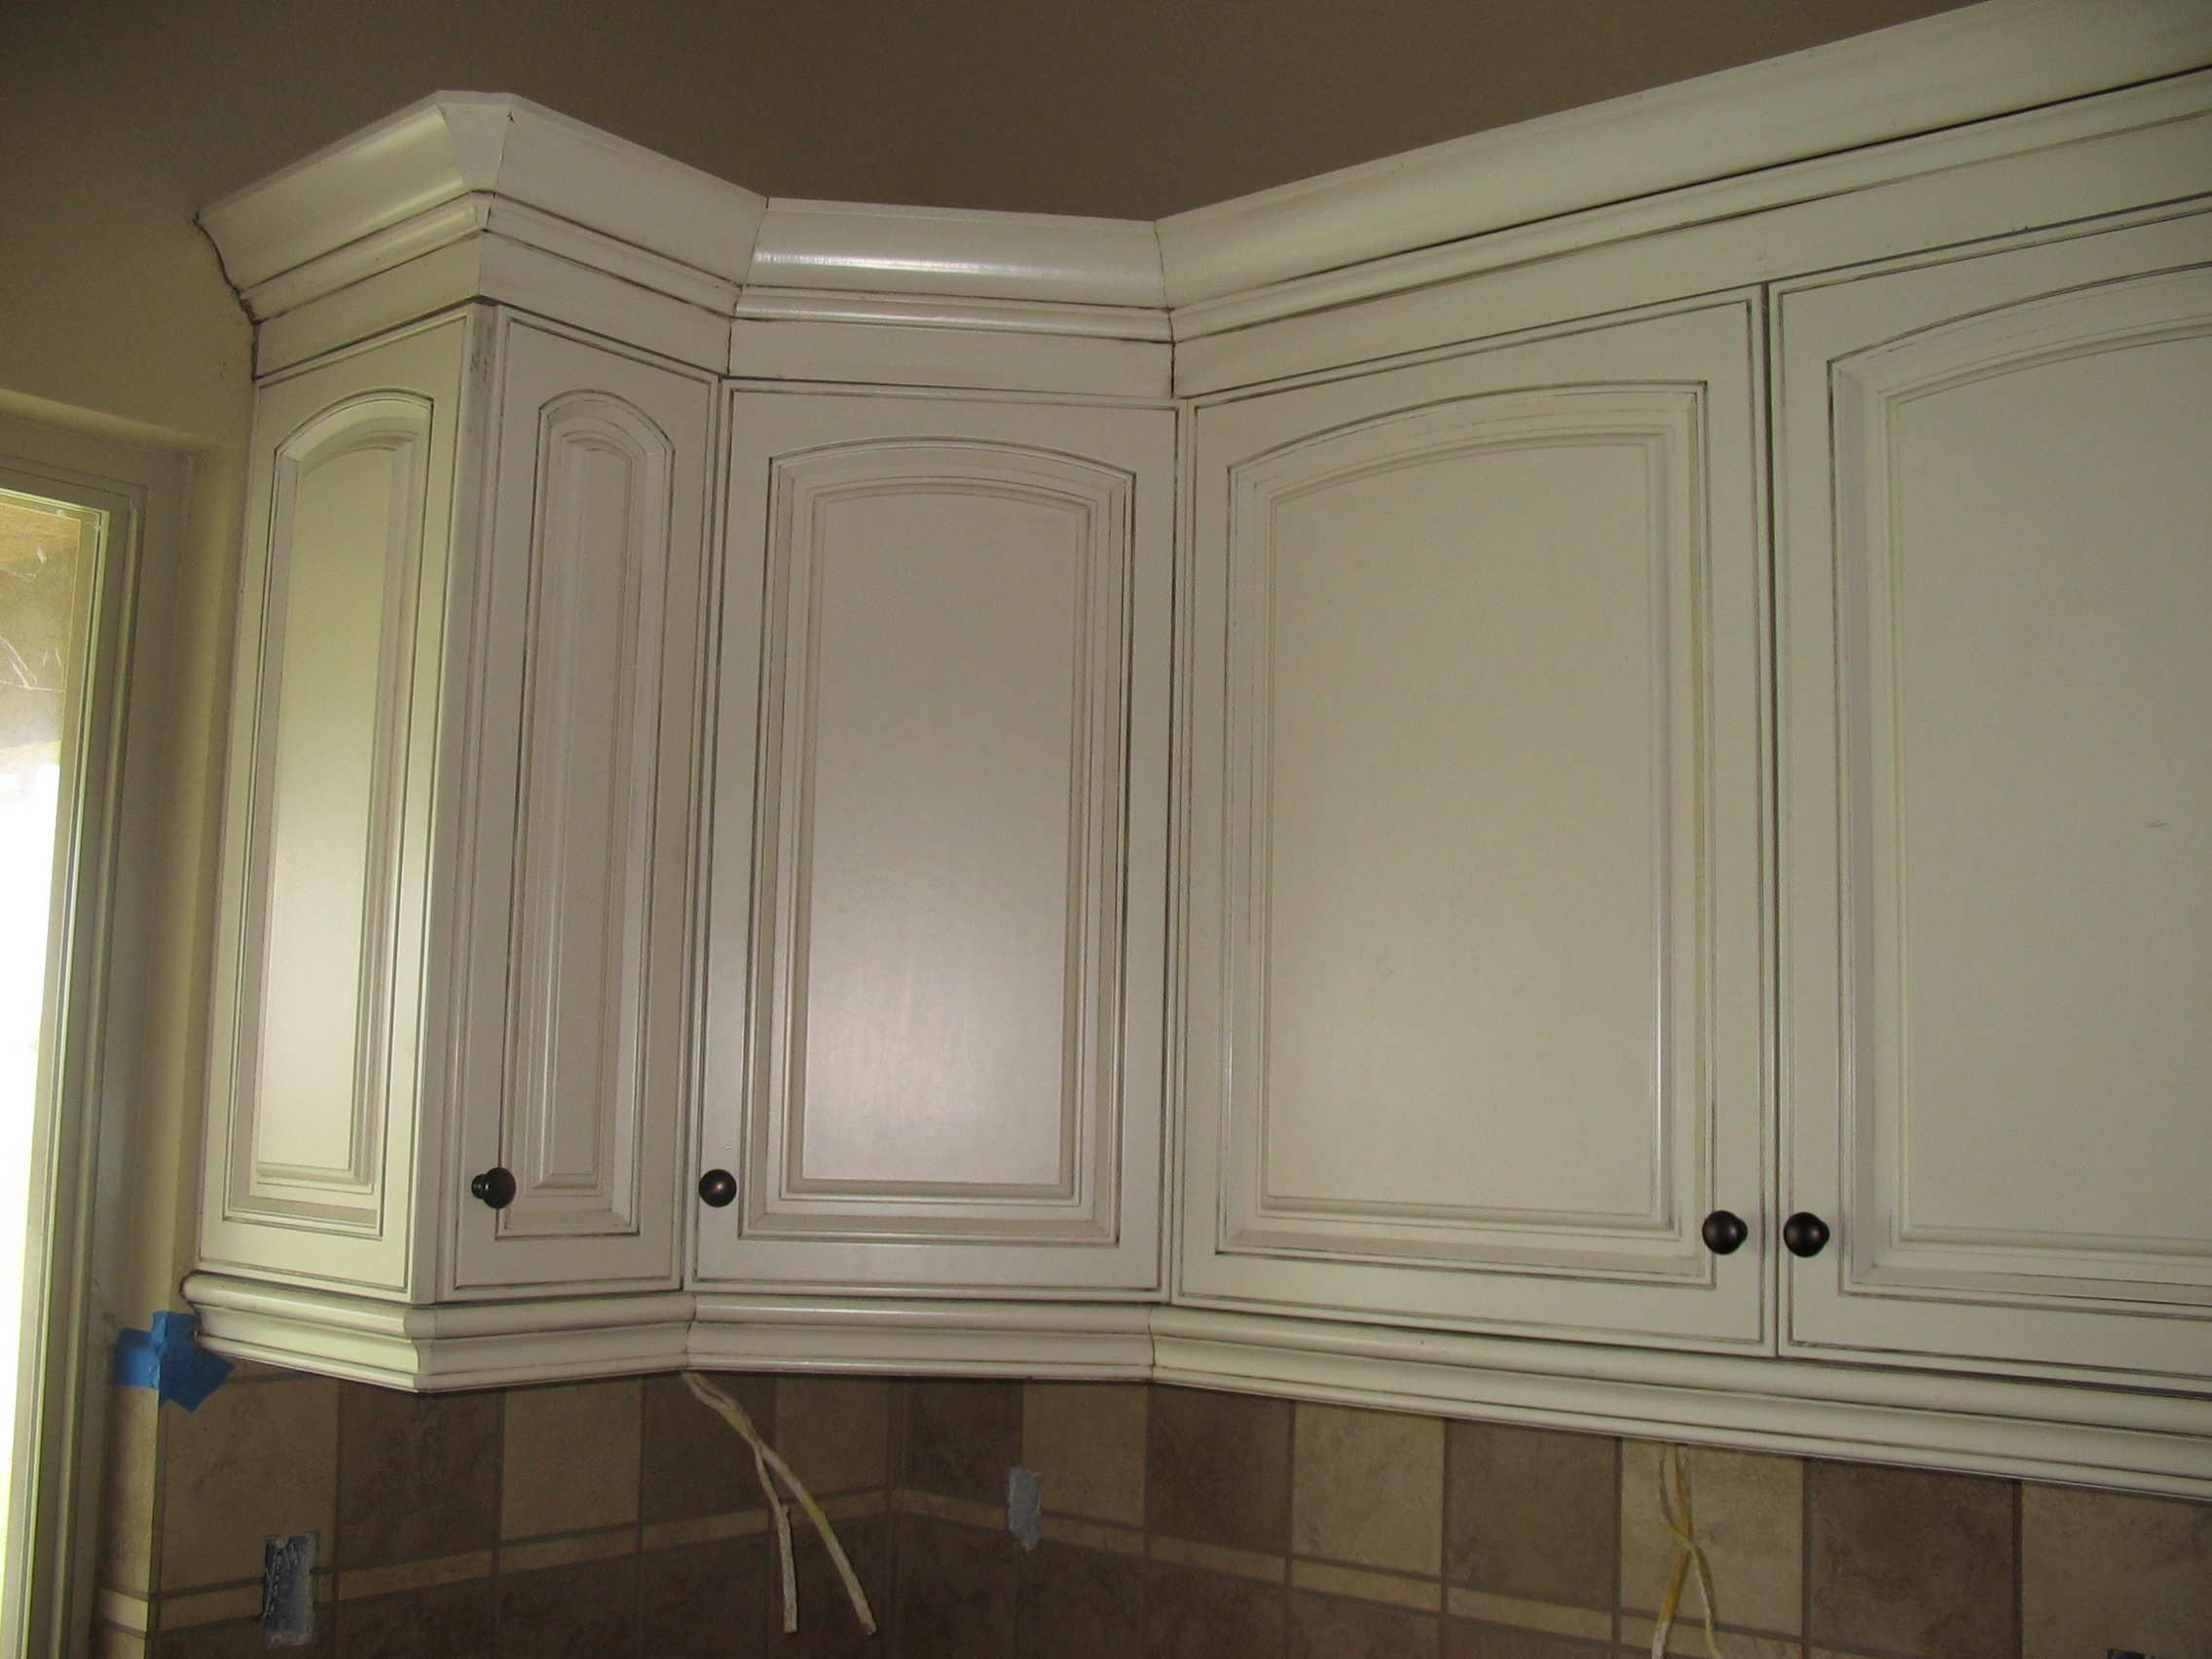 Stains For Kitchen Cabinets Images Of Cabinets Stained White Justdotchristina Blog